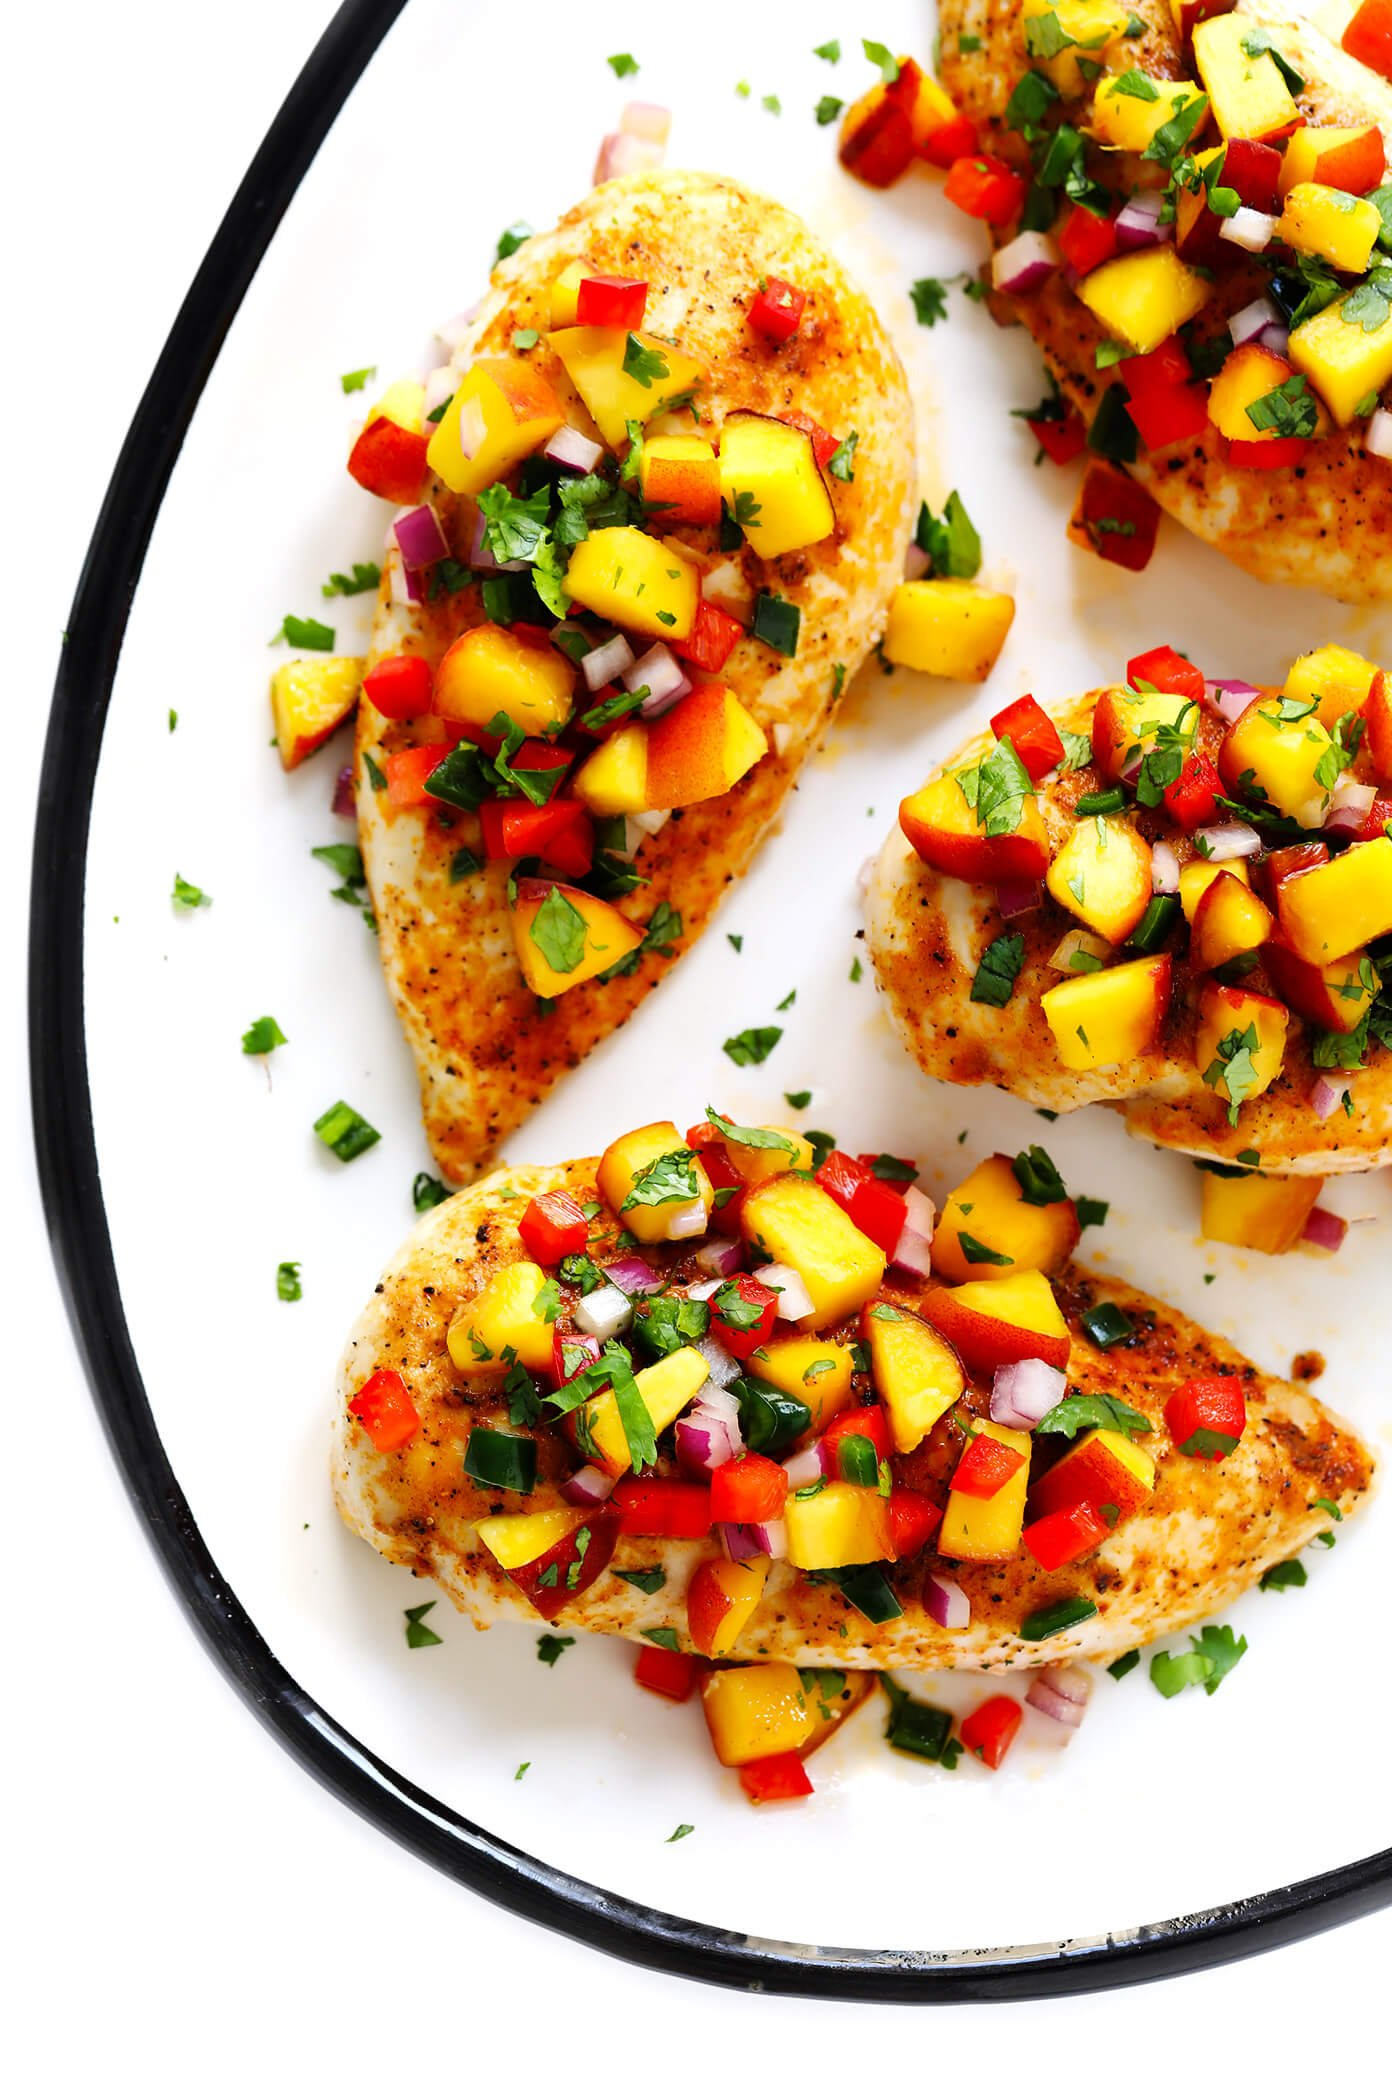 Baked Ginger Chicken Breasts with Confetti Peach Salsa